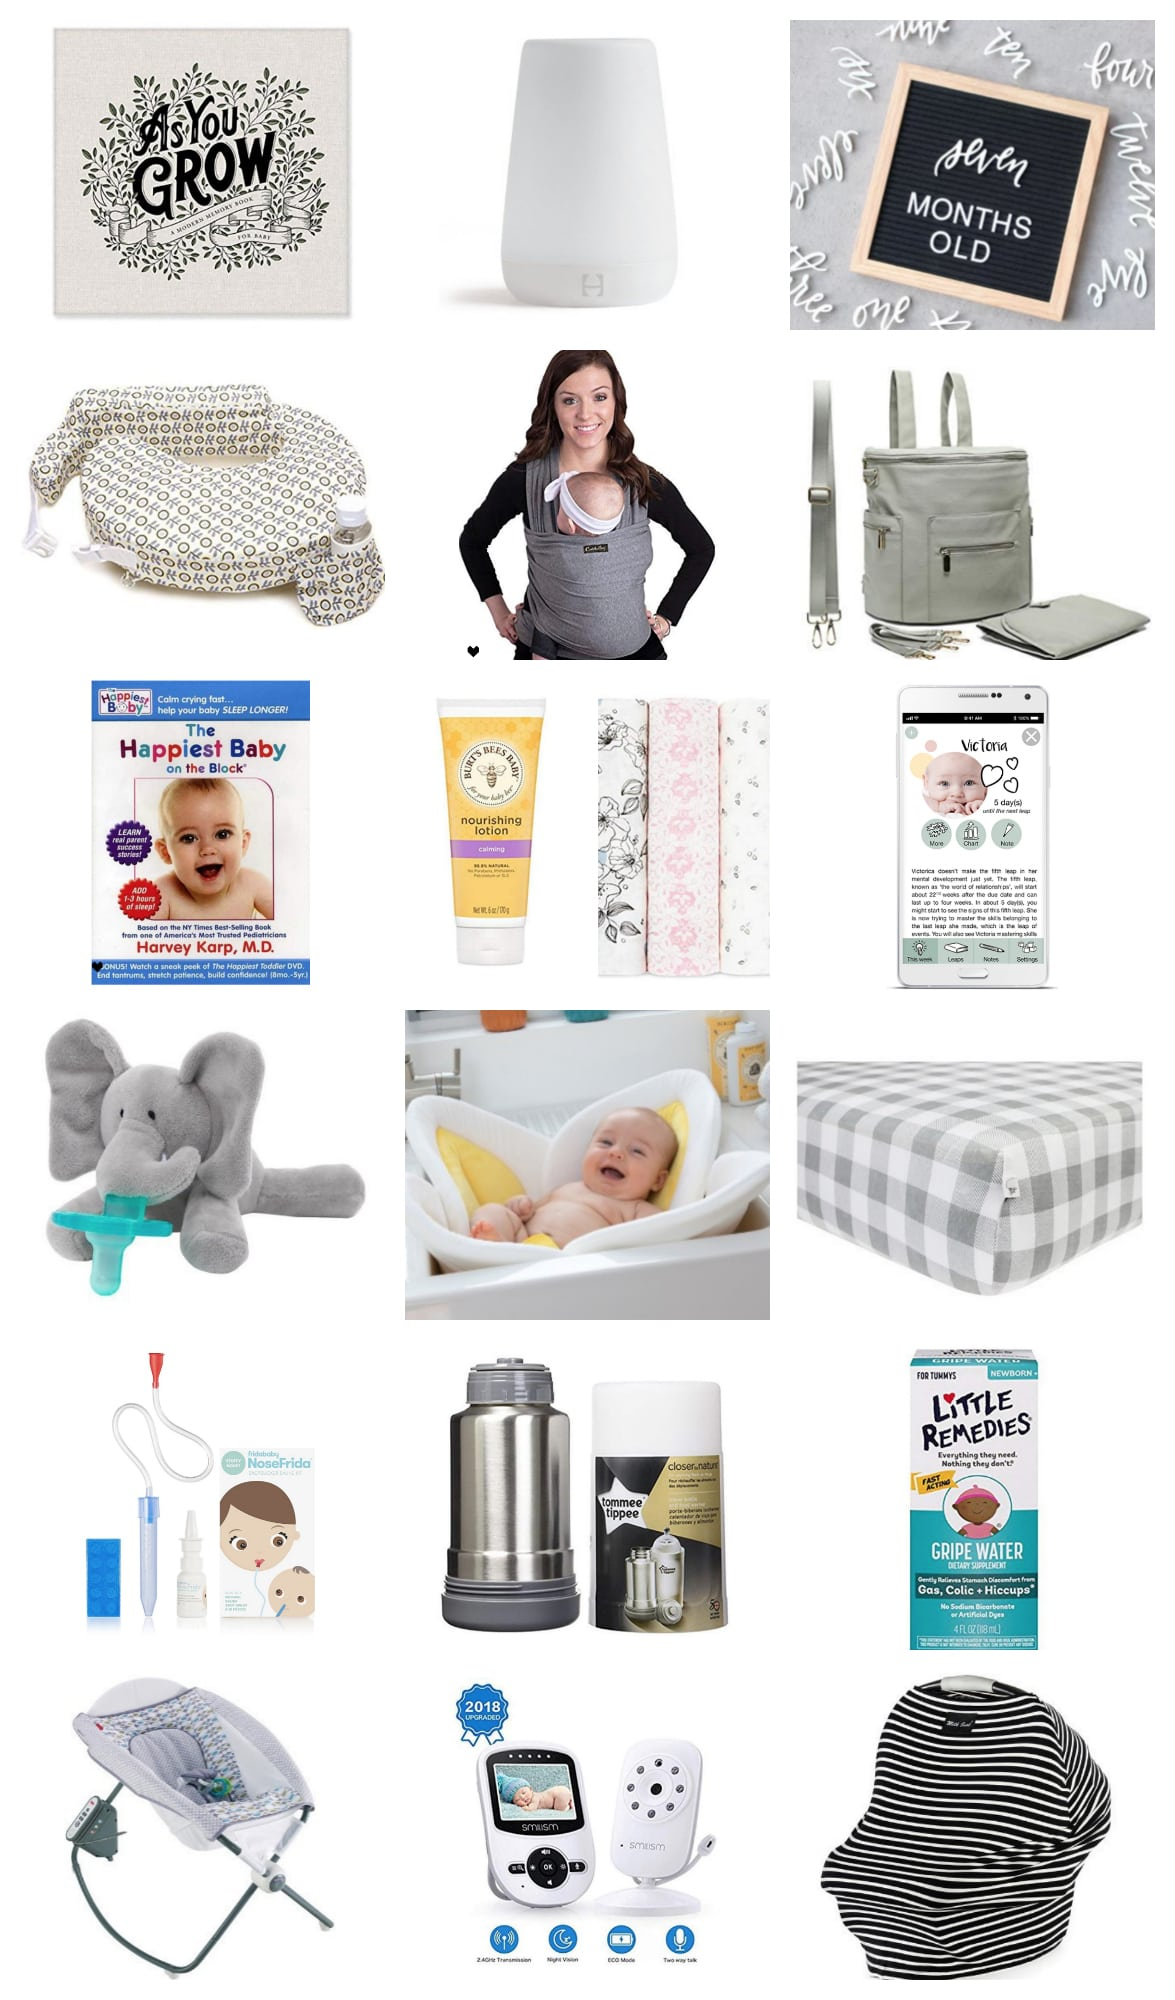 19 favorite newborn baby essentials like baby gear, toys, health items, apps, and keepsakes to make the first few months easier and extra special.